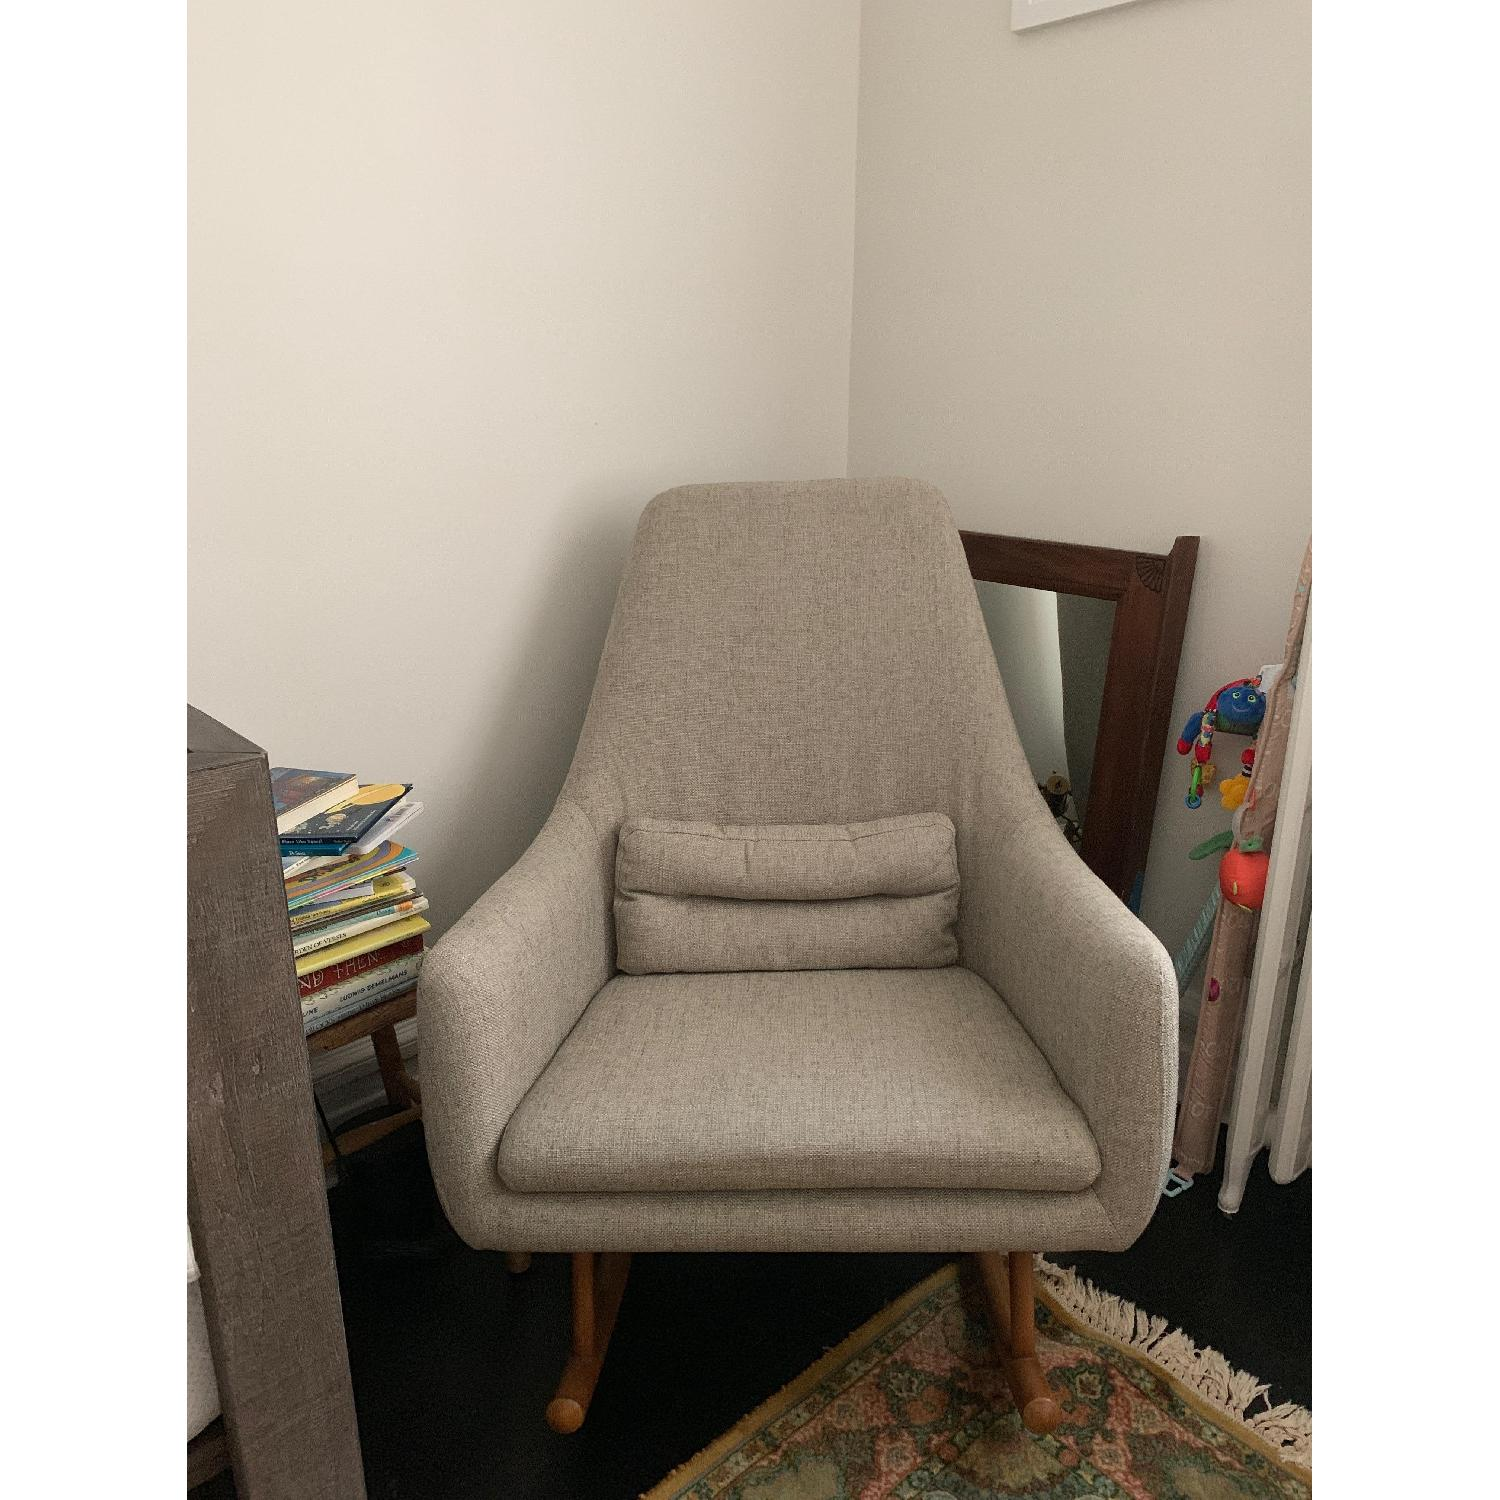 CB2 Saic Quantam Rocking Chair - image-1